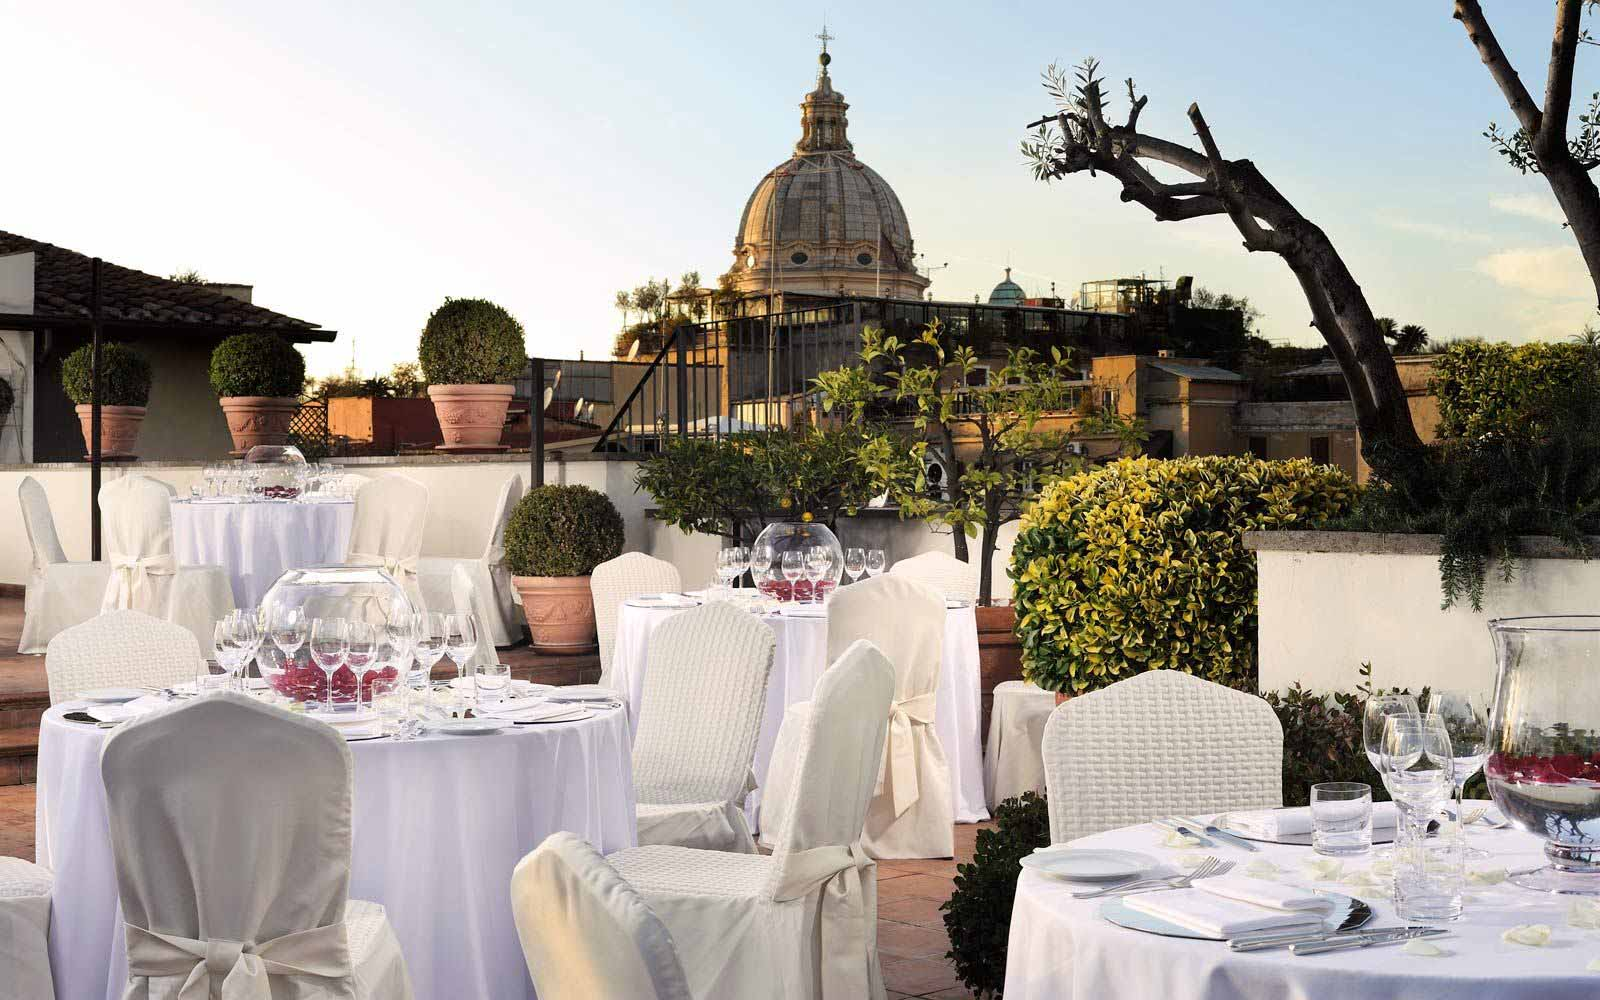 Roof terrace restaurant at Hotel D'Inghilterra